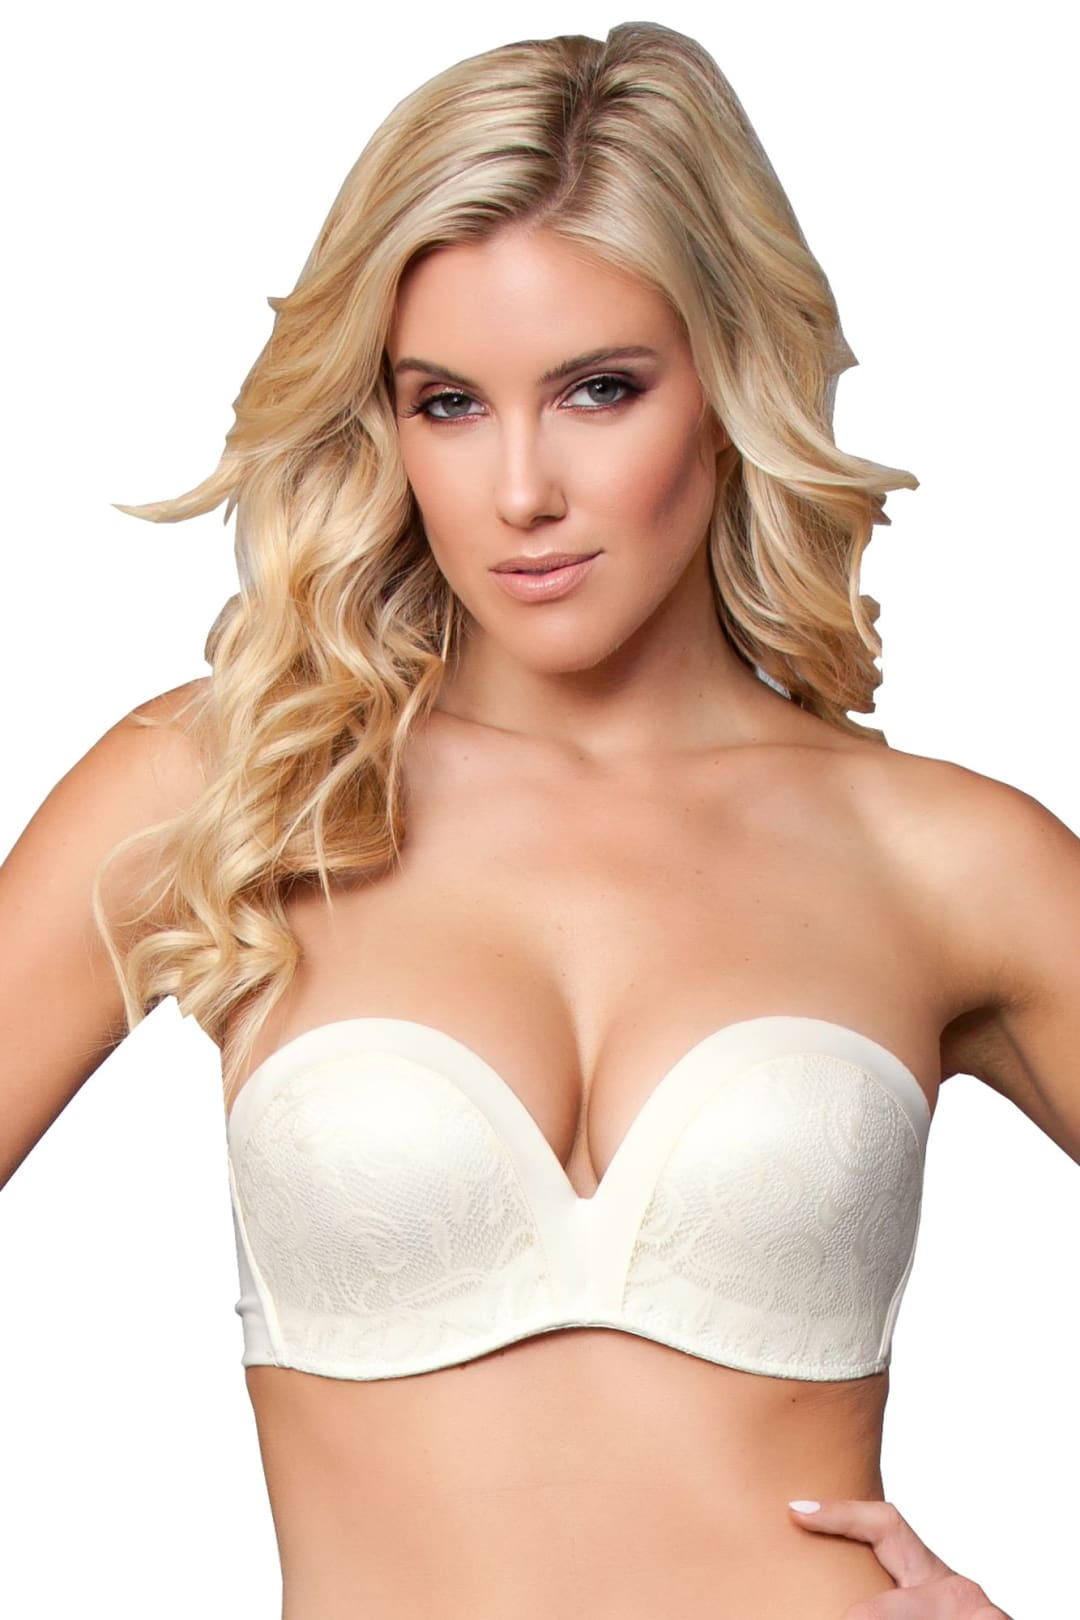 Strapless Push Up Bra Nude - Nude / A/S - Accessories